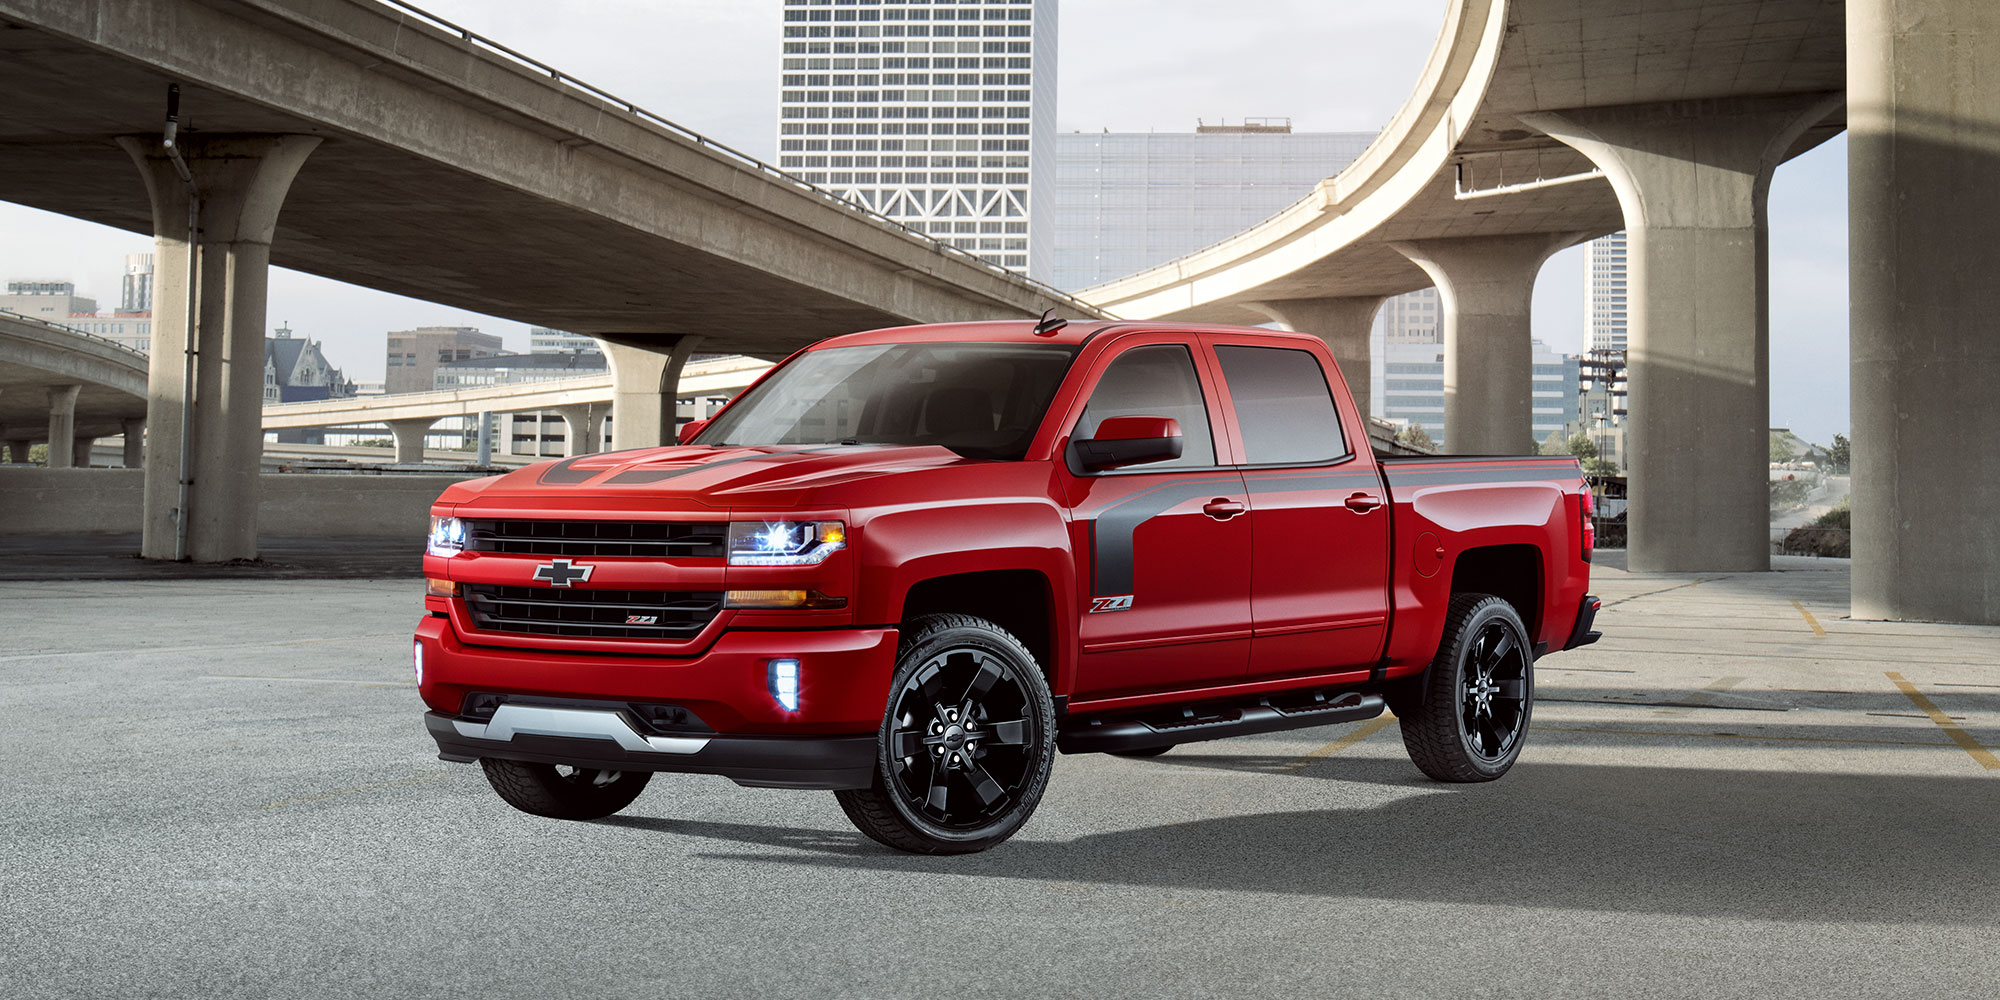 Ediciones especiales de Chevy Silverado: Lateral del Rally 2